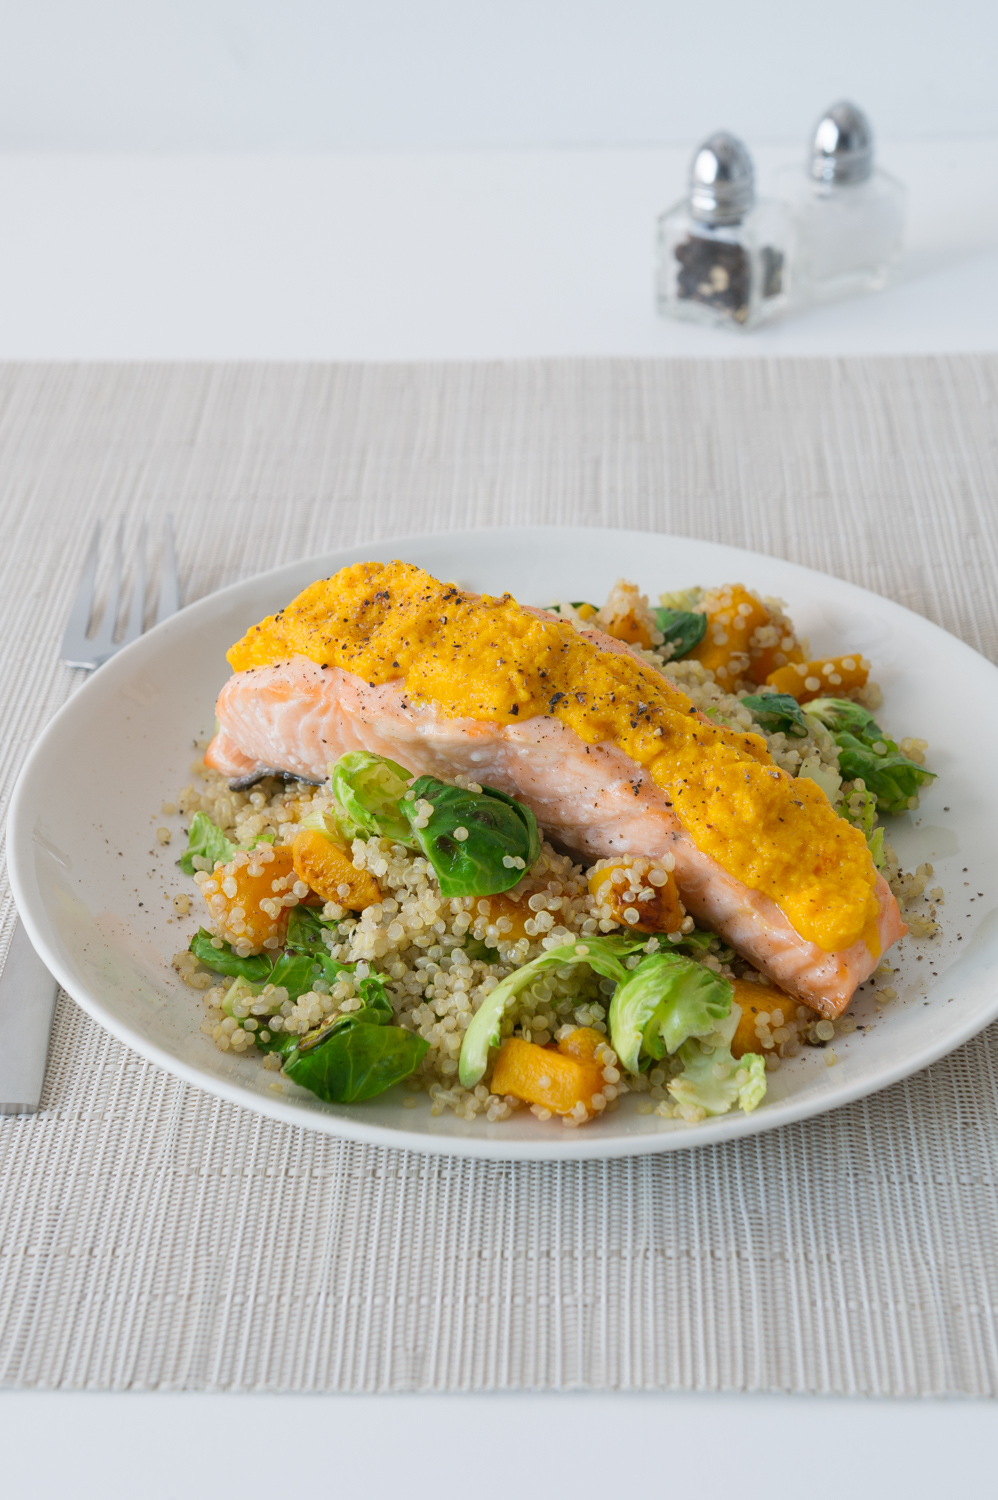 Pumpkin, Leek and Brussel Salad with a Carrot, Ginger and Orange Dressing